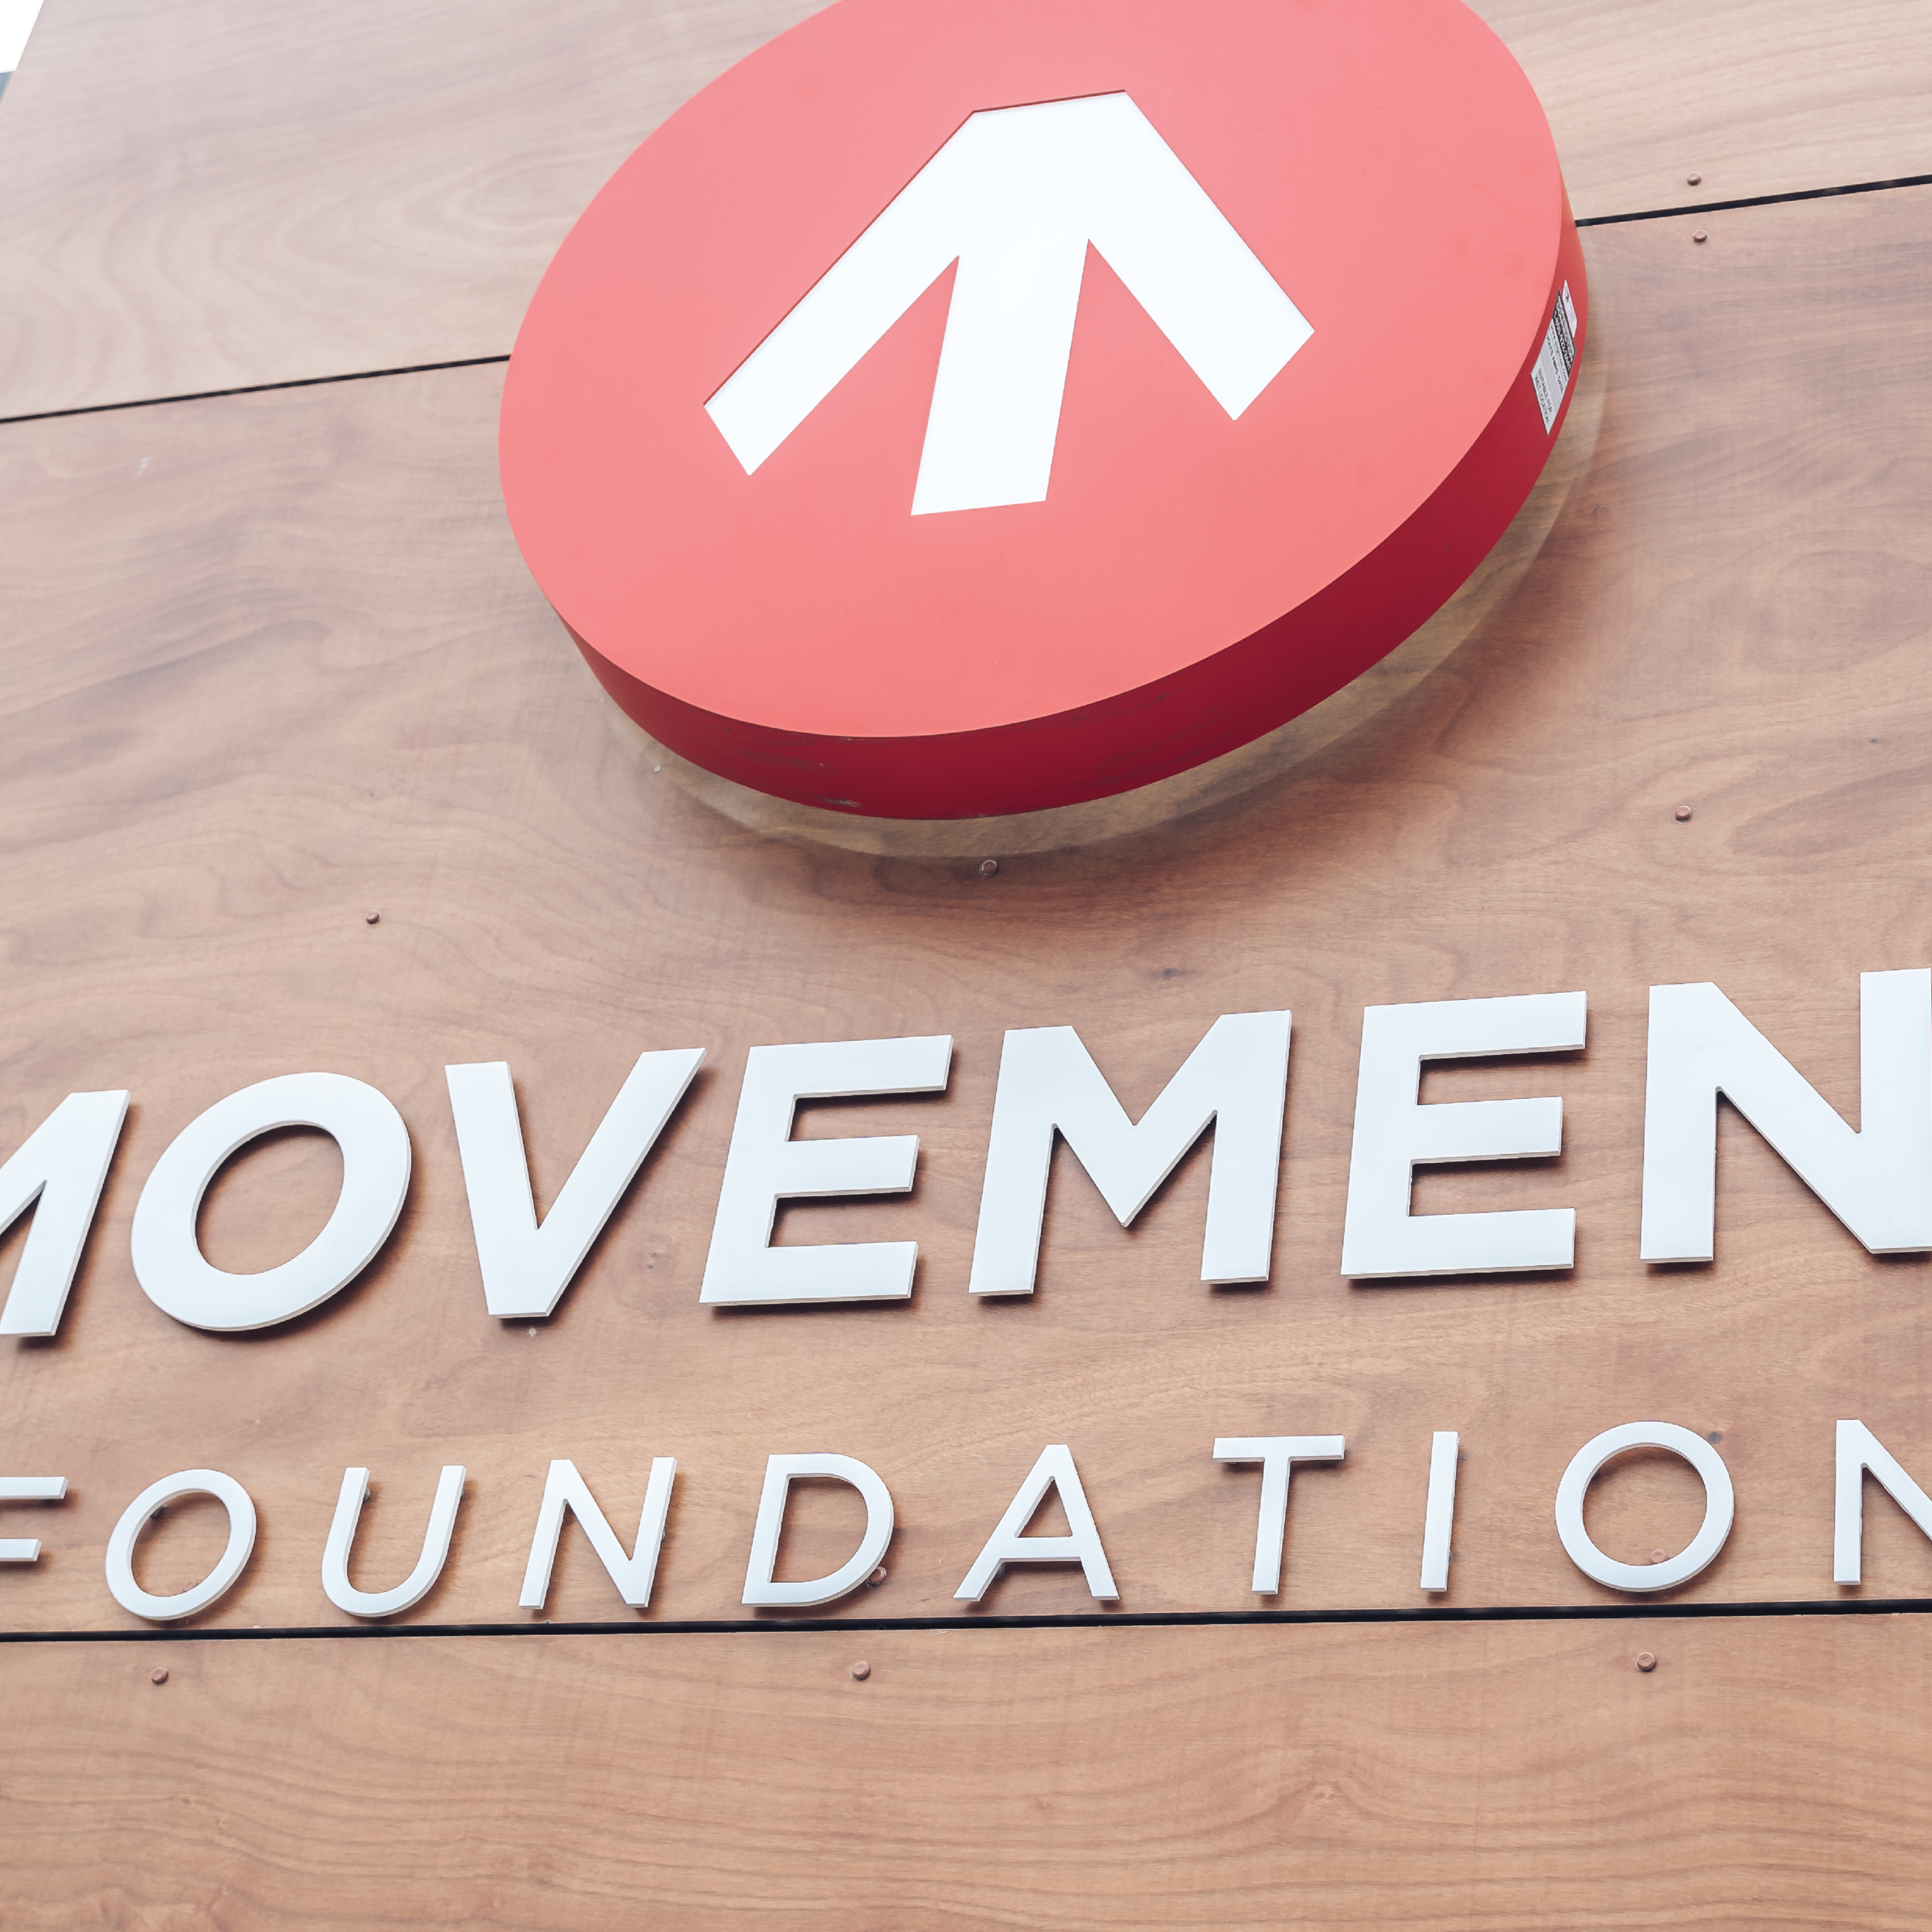 MOVEMENT FOUNDATION - Movement Mortgage's Foundation sought to build a center that would help bring other organizations together as well as serve the city of Charlotte